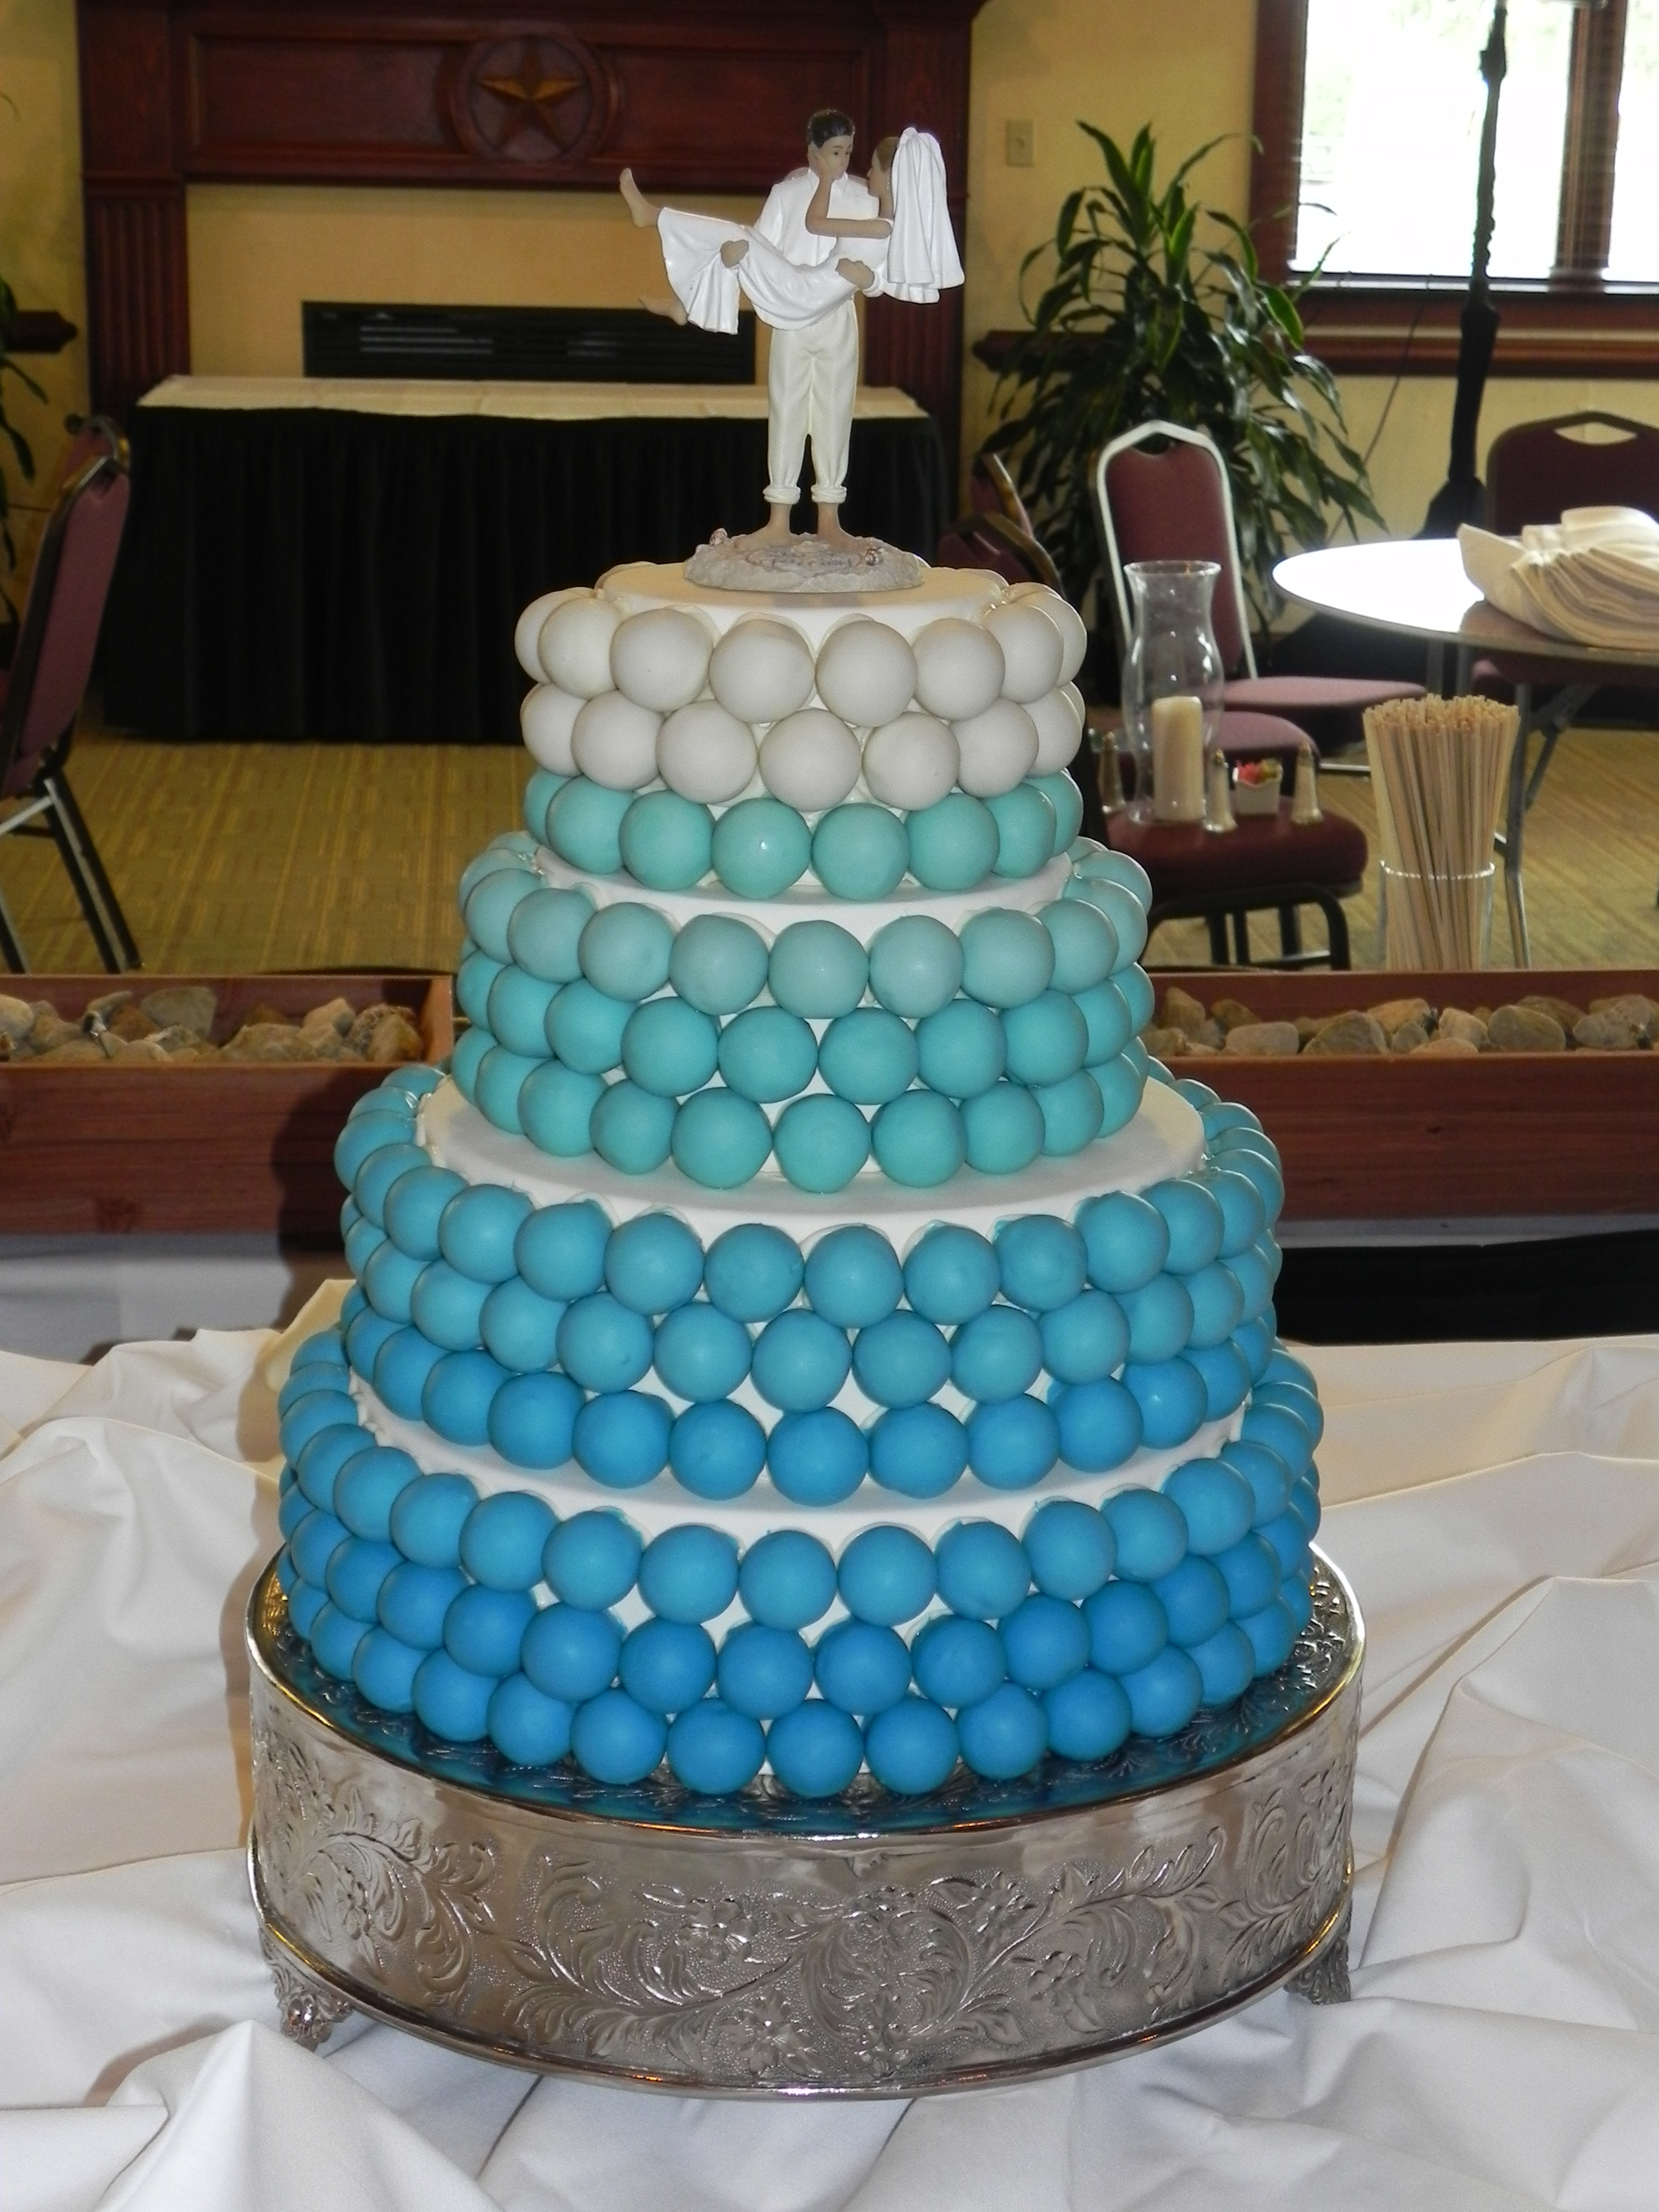 They Selected A Tiffany Blue Ombre Tiered Cake Ball Display With Cutting That Topped The Perfect Love Birds Topper